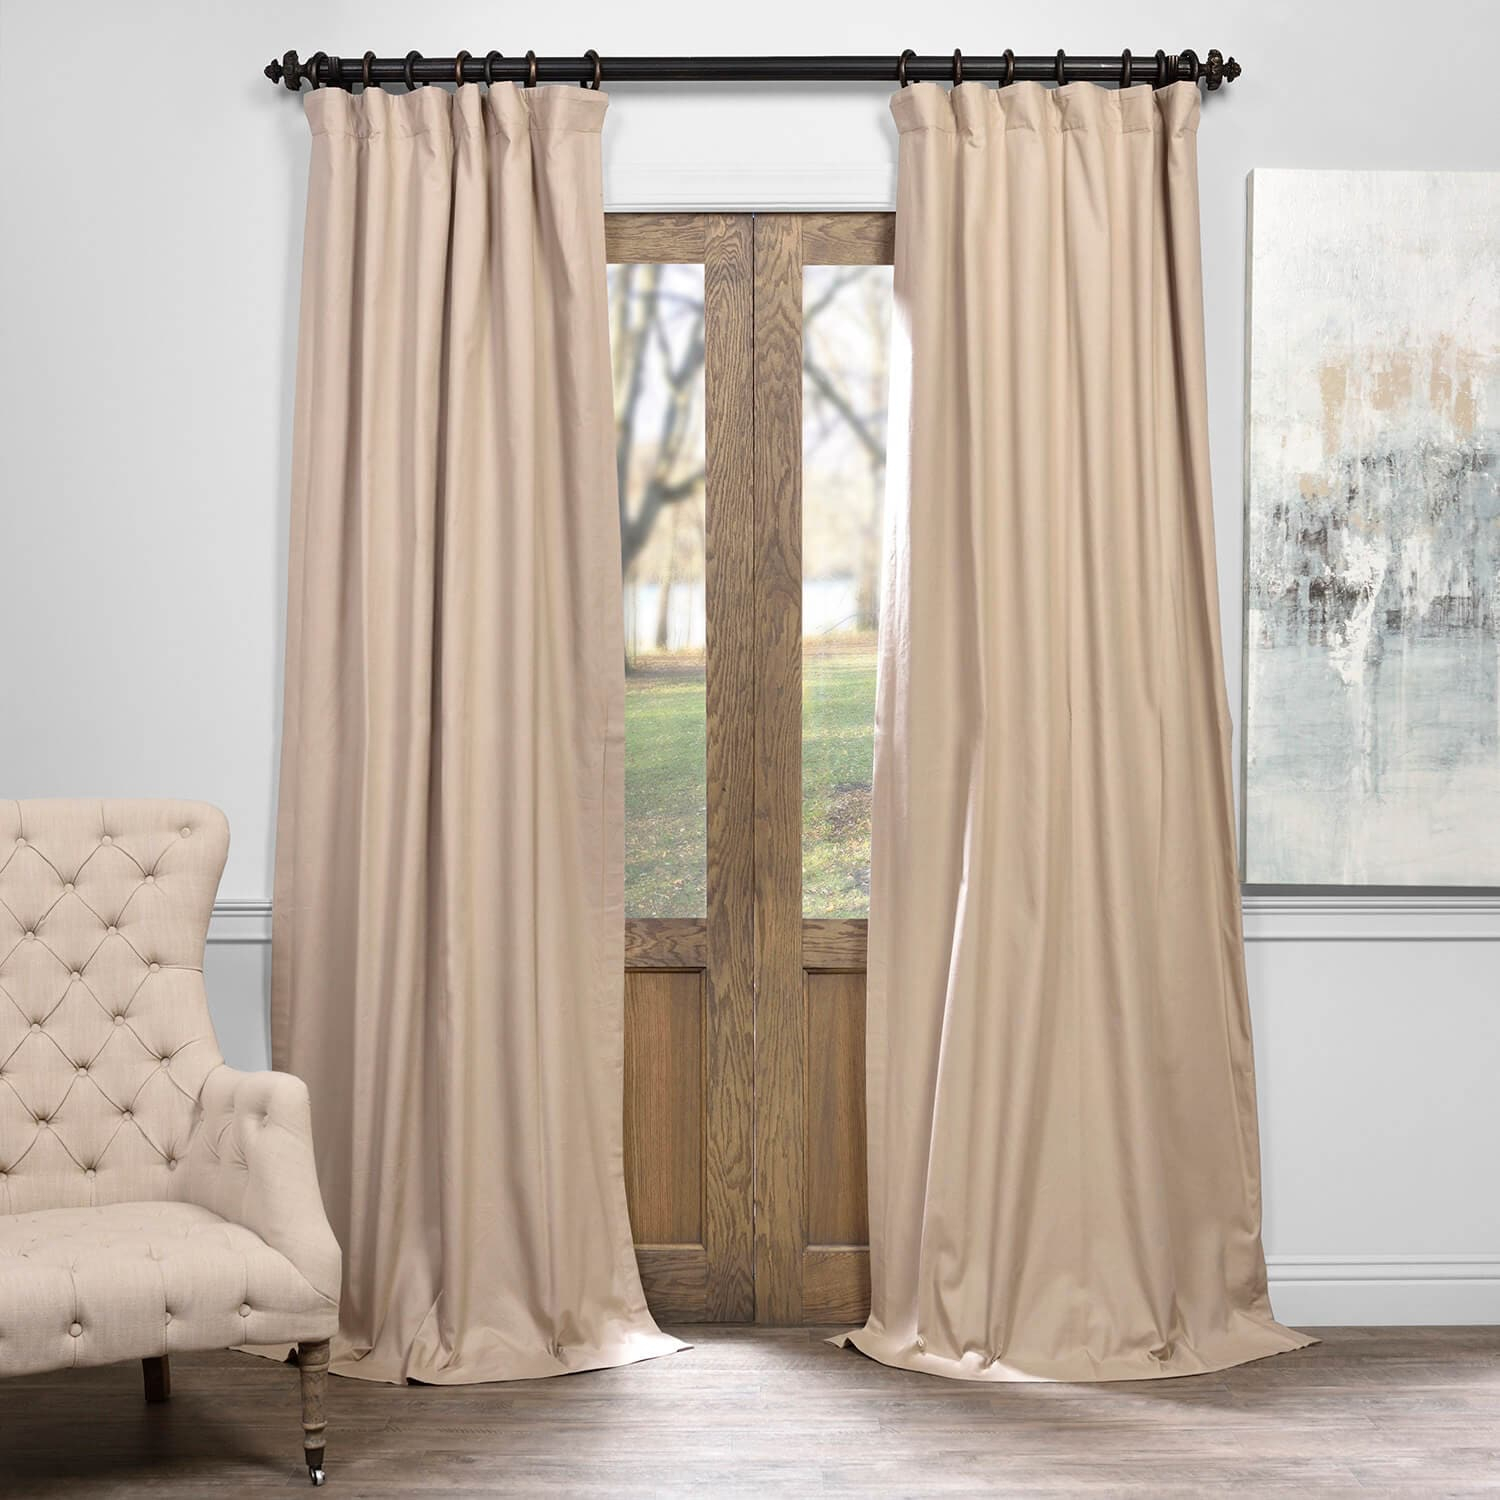 Rugged Tan Solid Cotton Blackout Curtain Throughout Signature Pinch Pleated Blackout Solid Velvet Curtain Panels (View 29 of 36)